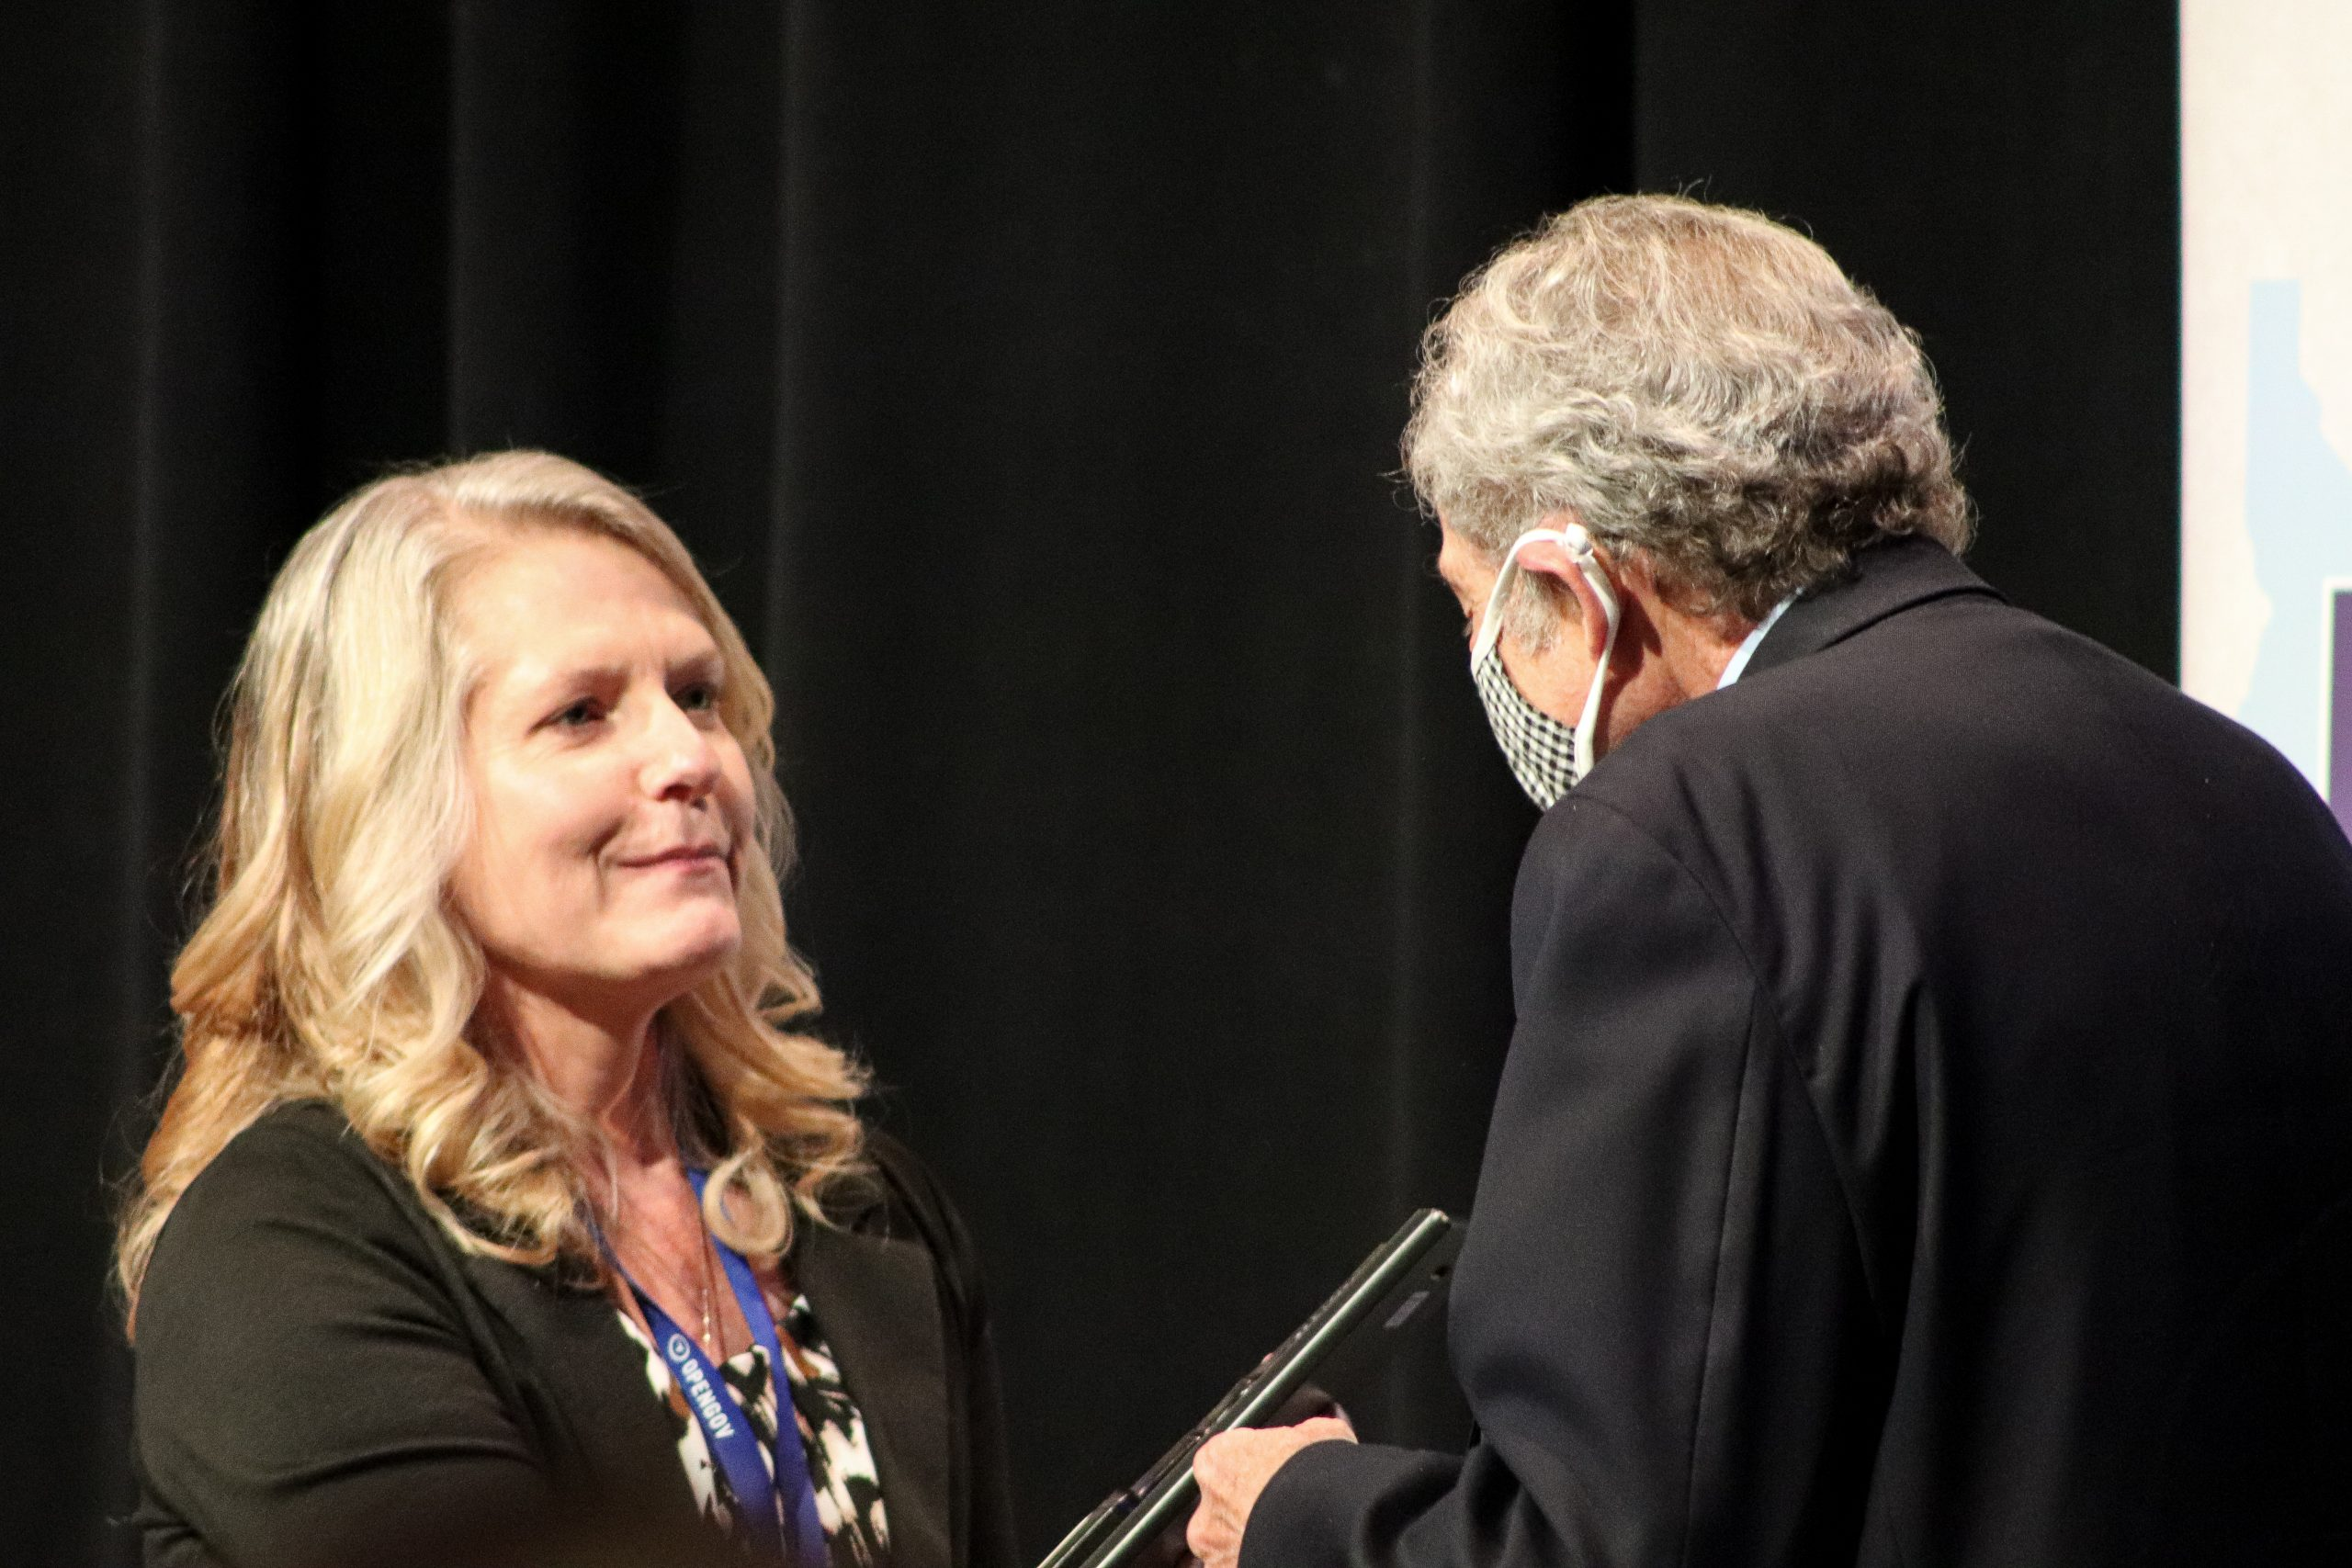 IAC Honors Belated 2020 Award Recipients at Annual Conference